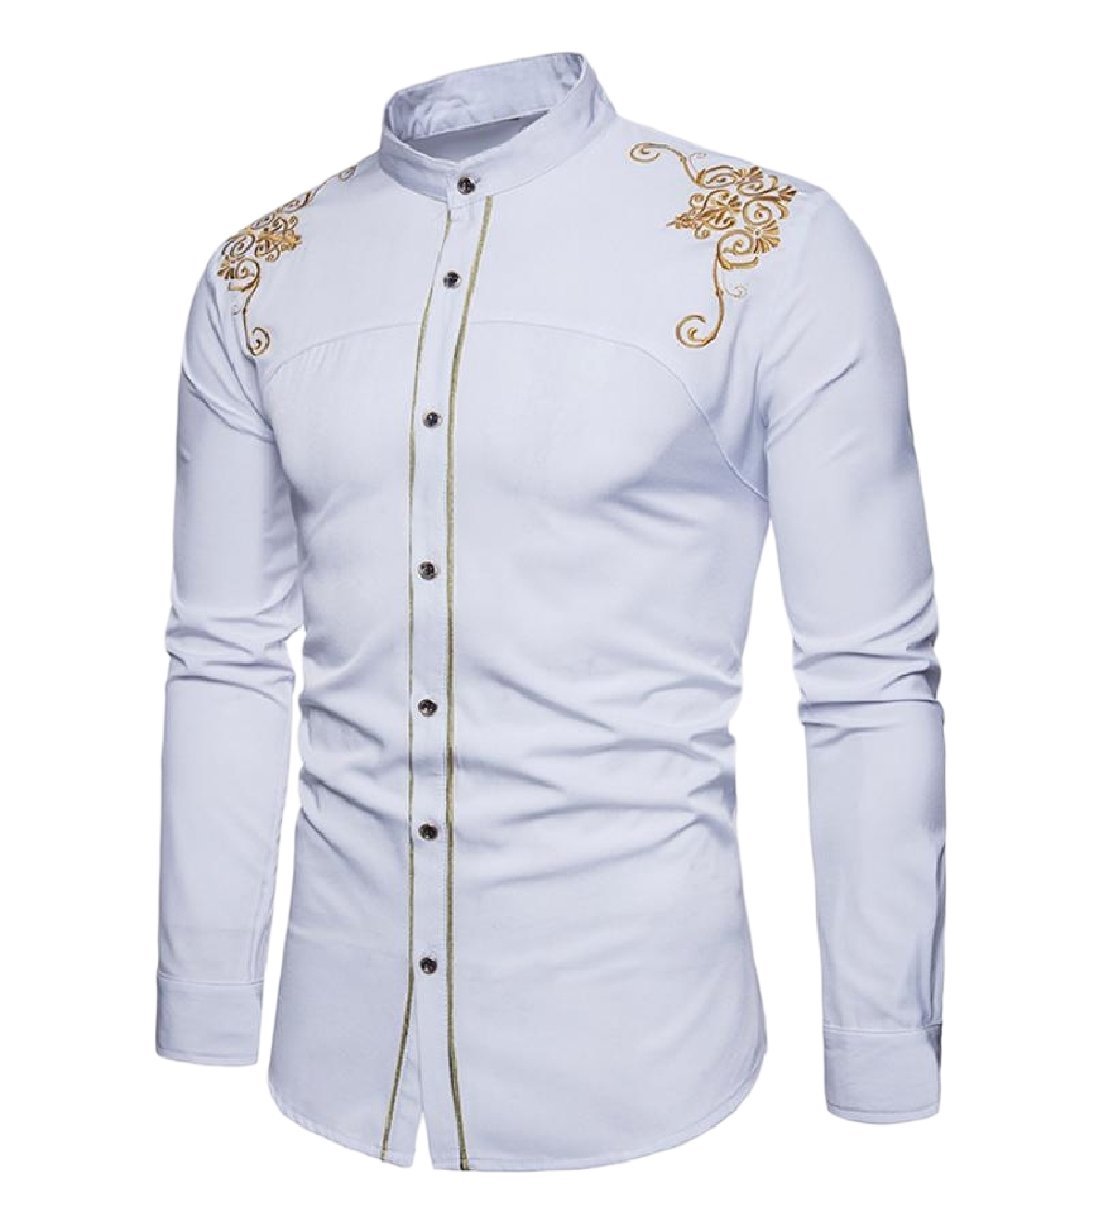 SportsX Men Embroidery Stylish Wedding Long Sleeve Stand up Collar Shirts White M